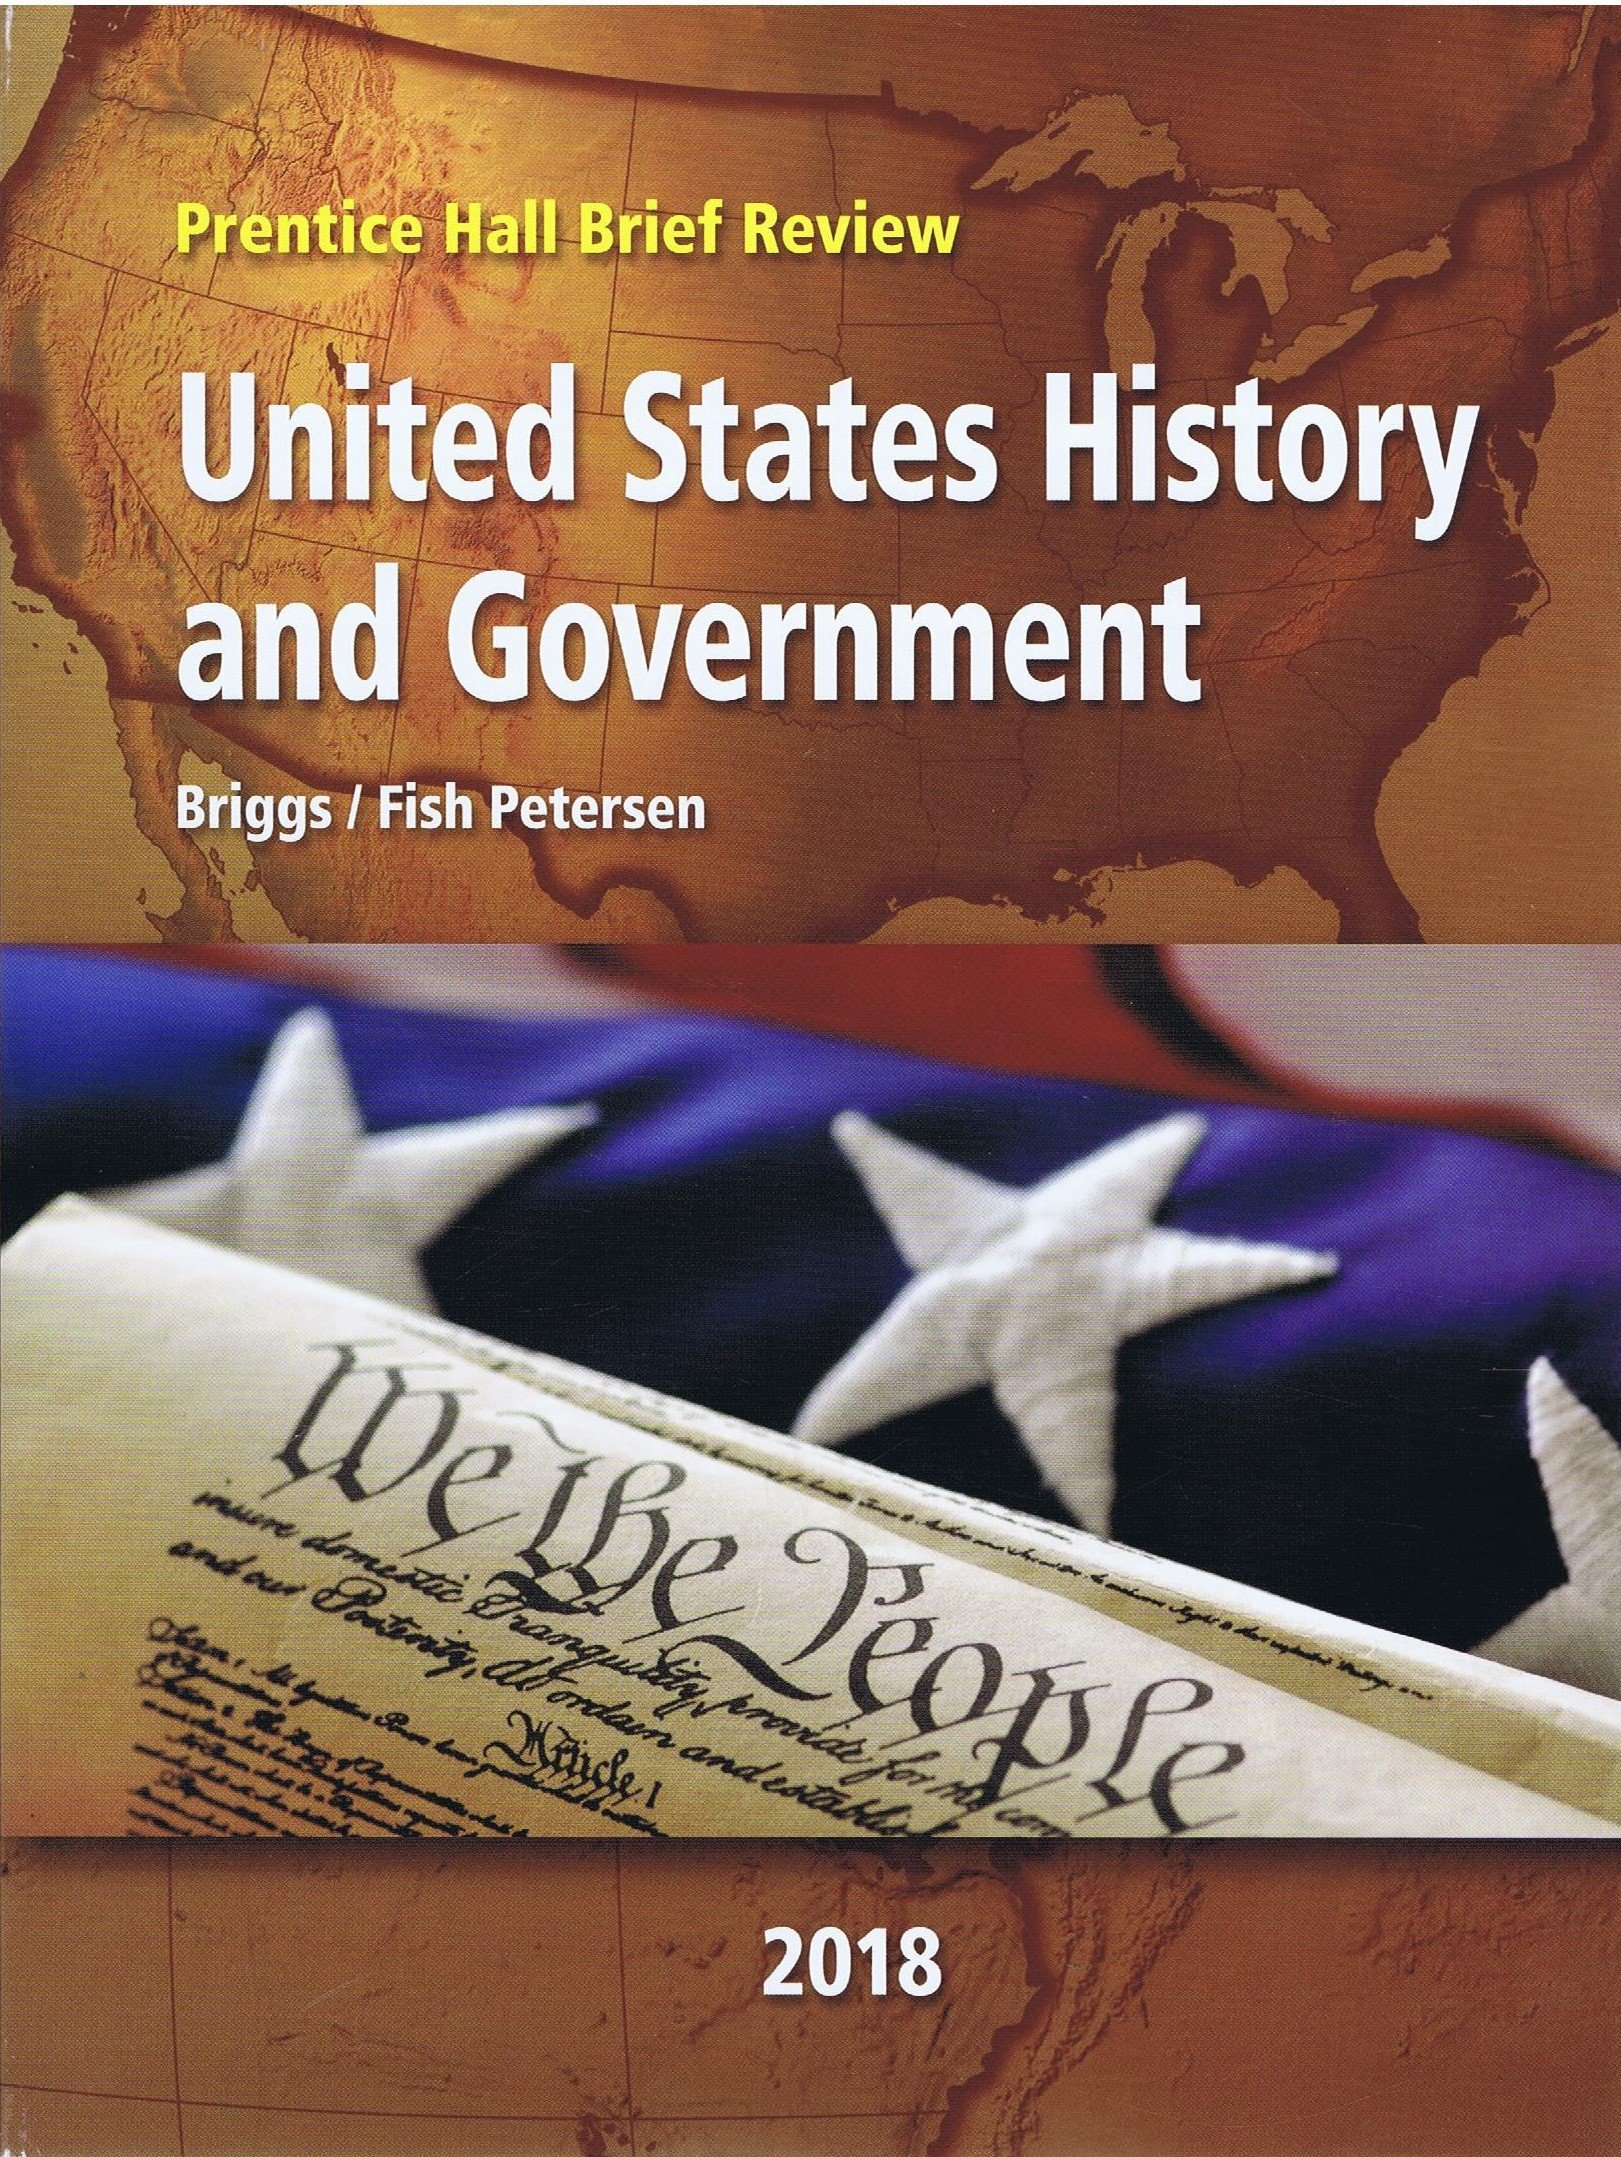 Prentice Hall Brief Review United States History and